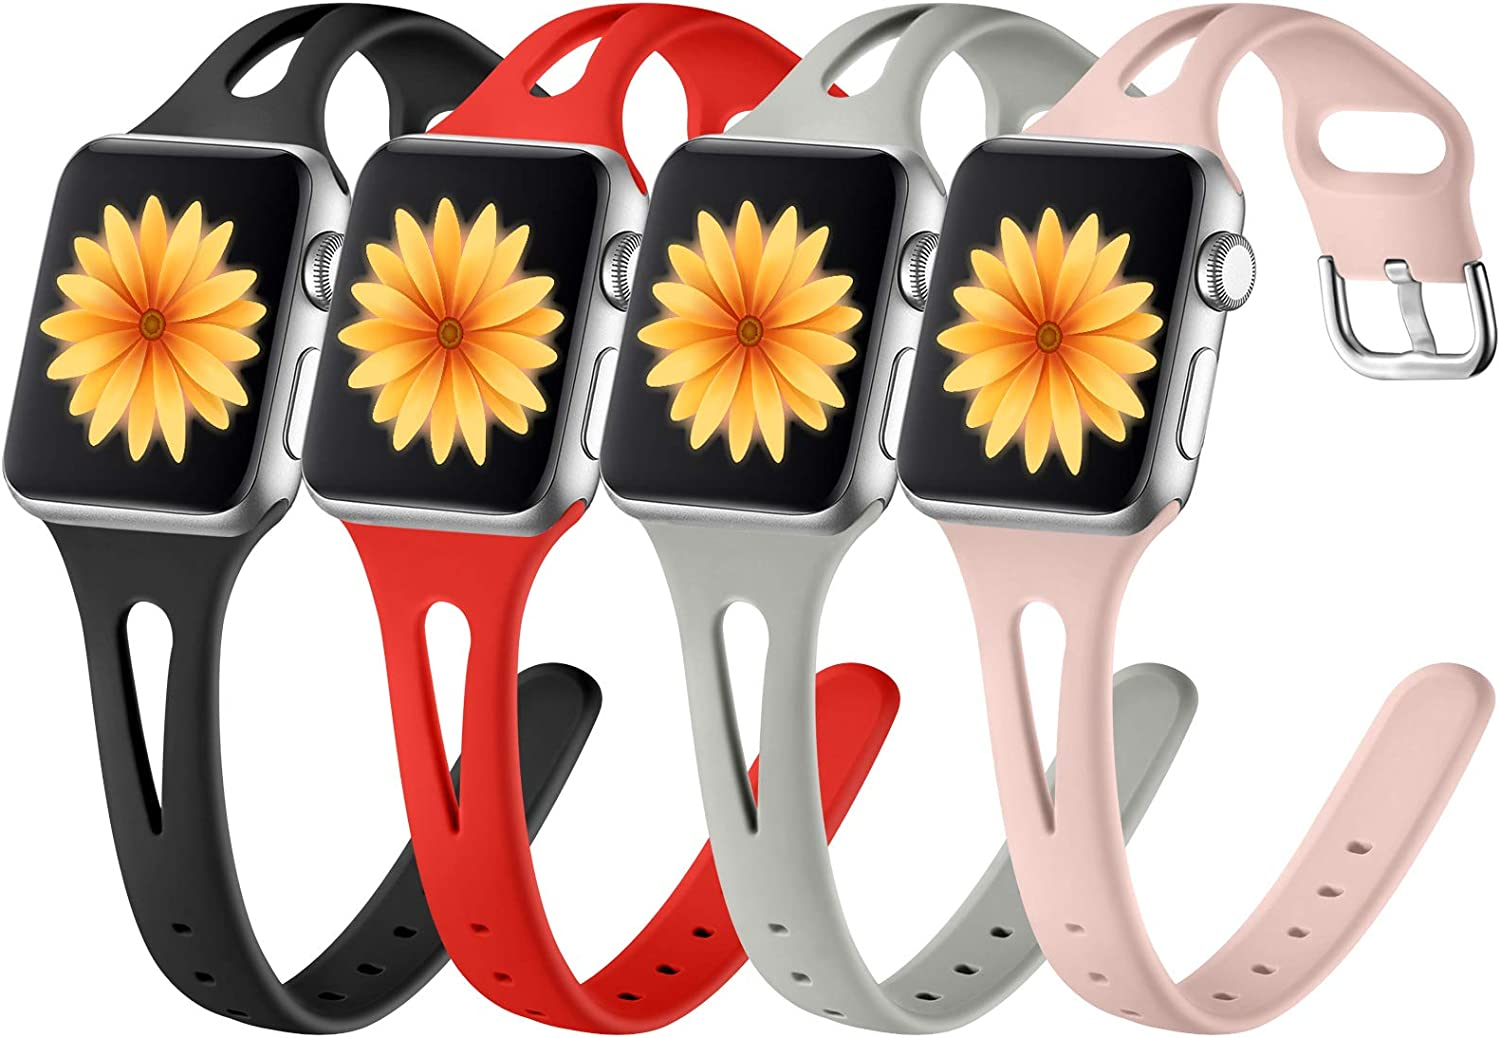 GEAK 4 Pack Compatible with Apple Watch Band 40mm iWatch SE & Series 6 5 4 3 2 1 for Women Men, Soft Slim Silicone Sport Strap for Apple Watch Band 38mm Women Balck/Gray/Red/Sand Pink